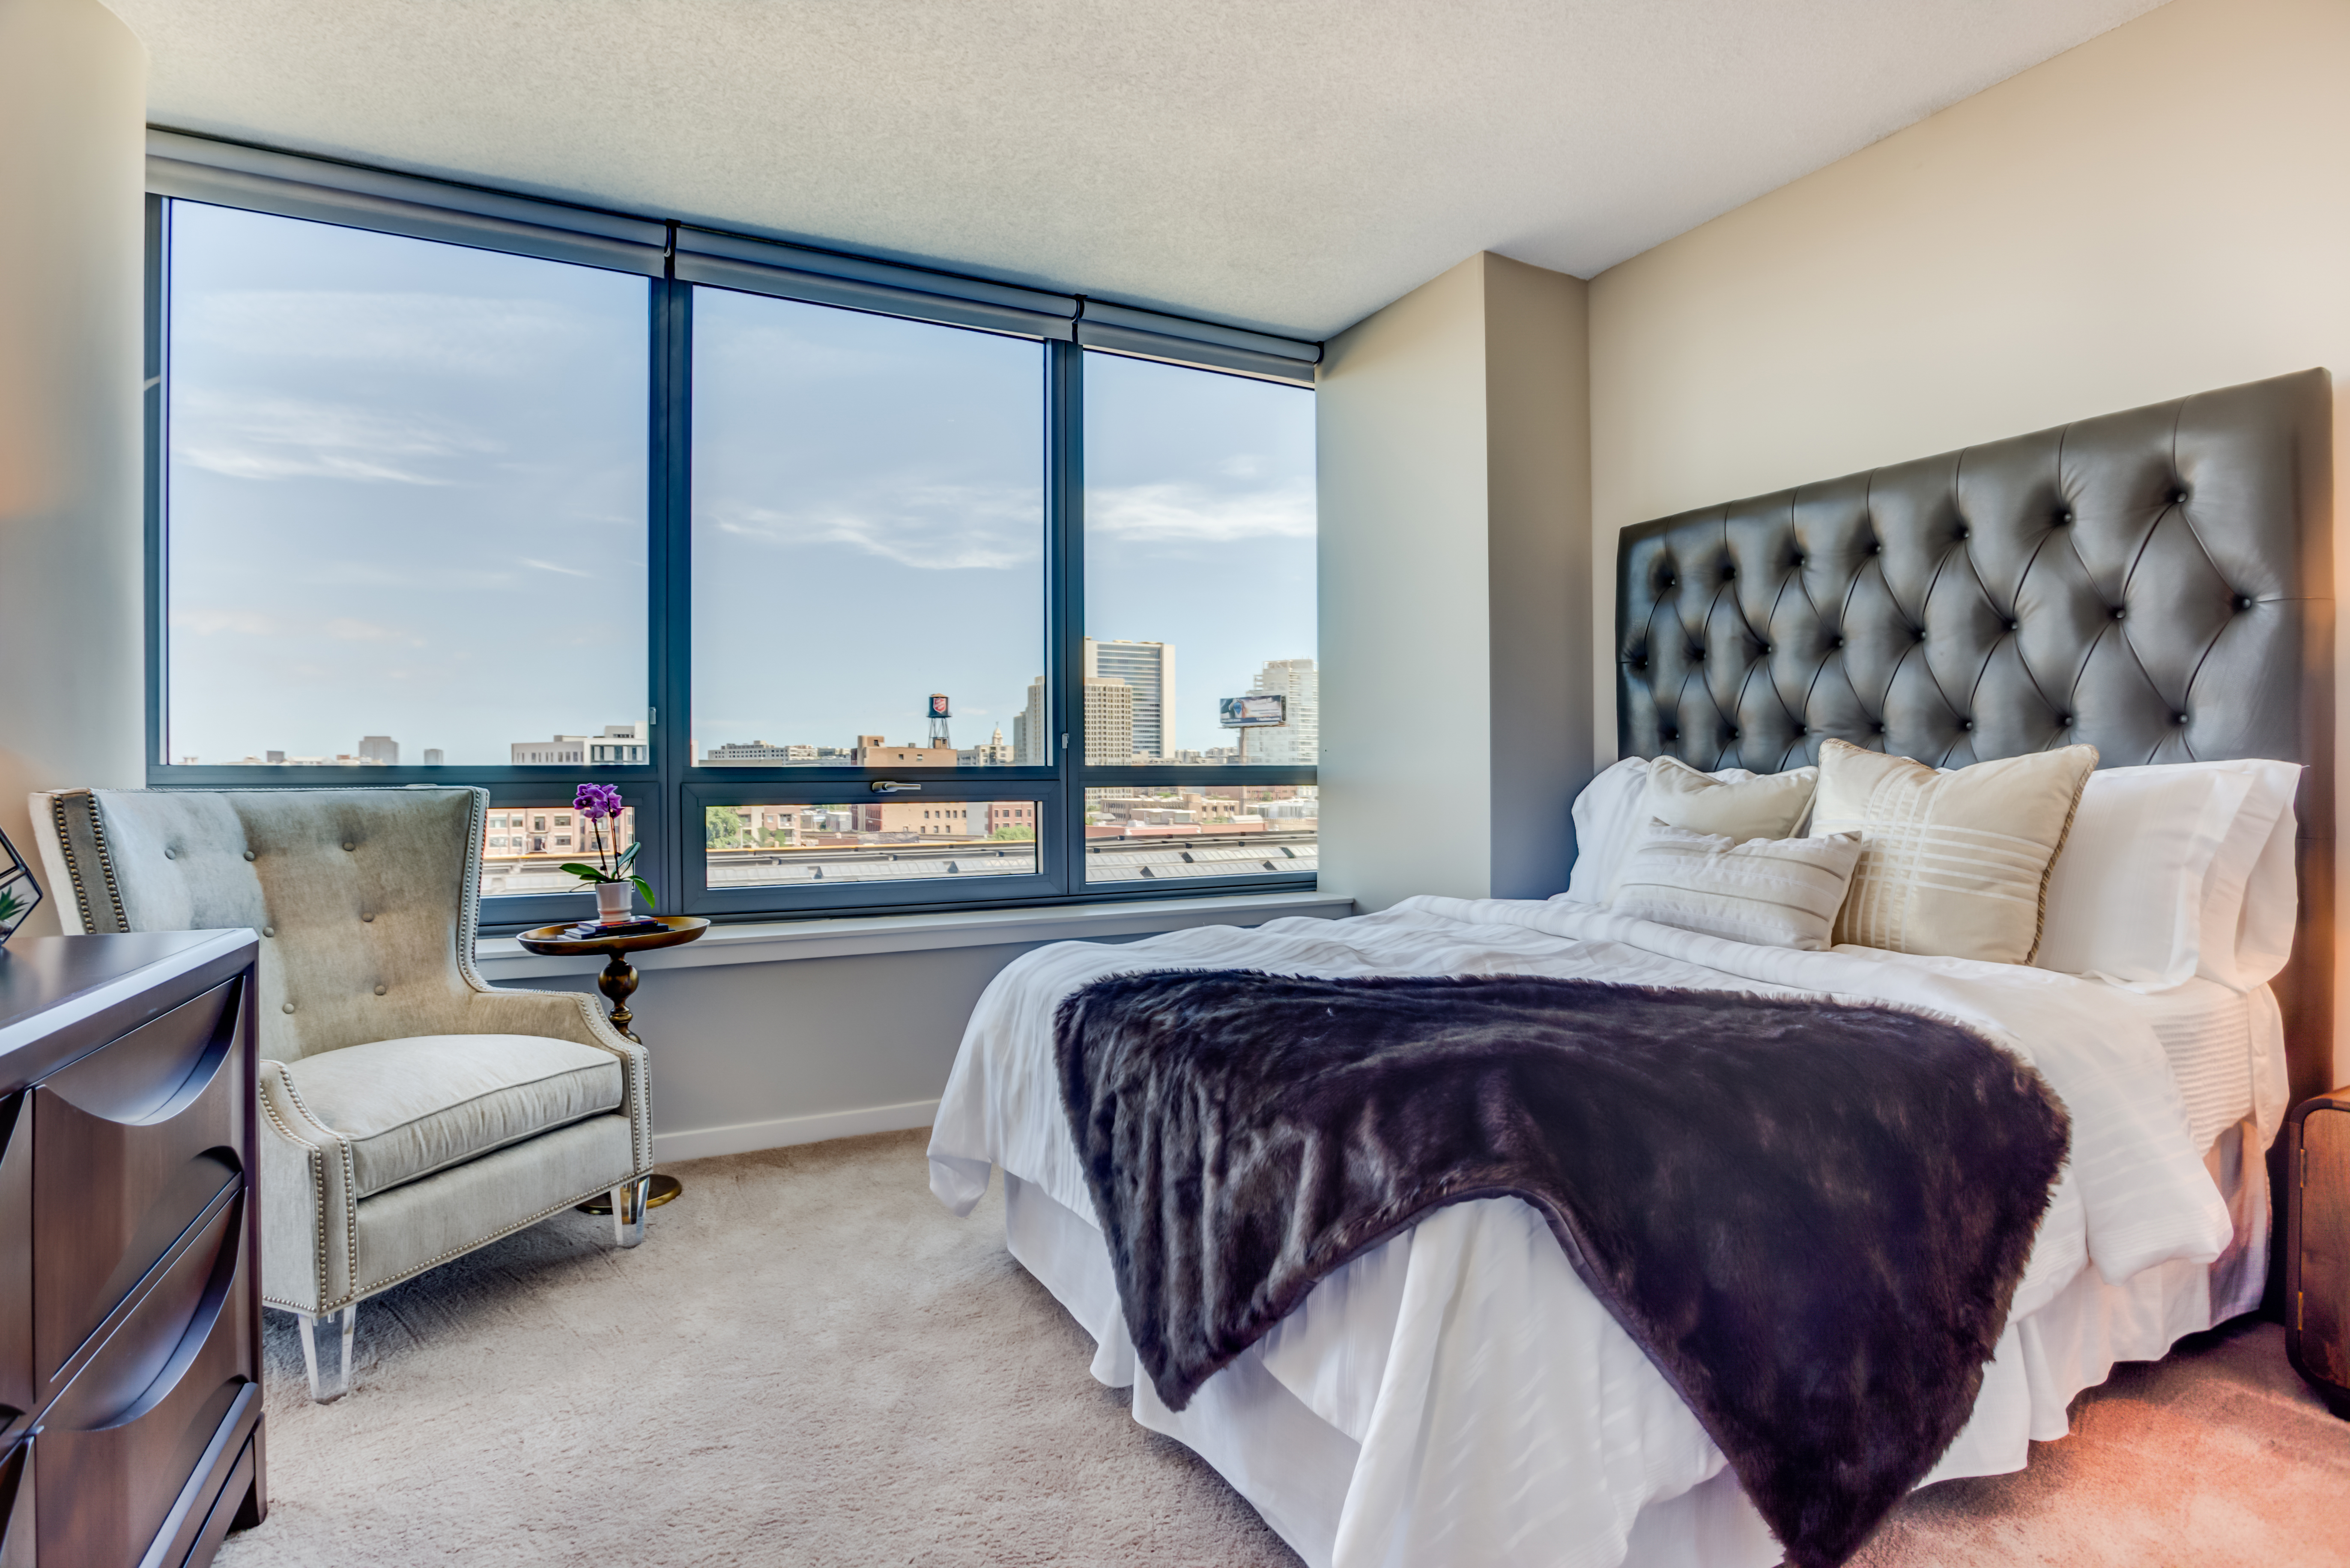 Apartments For Rent in Chicago   K2 Apartments   Home